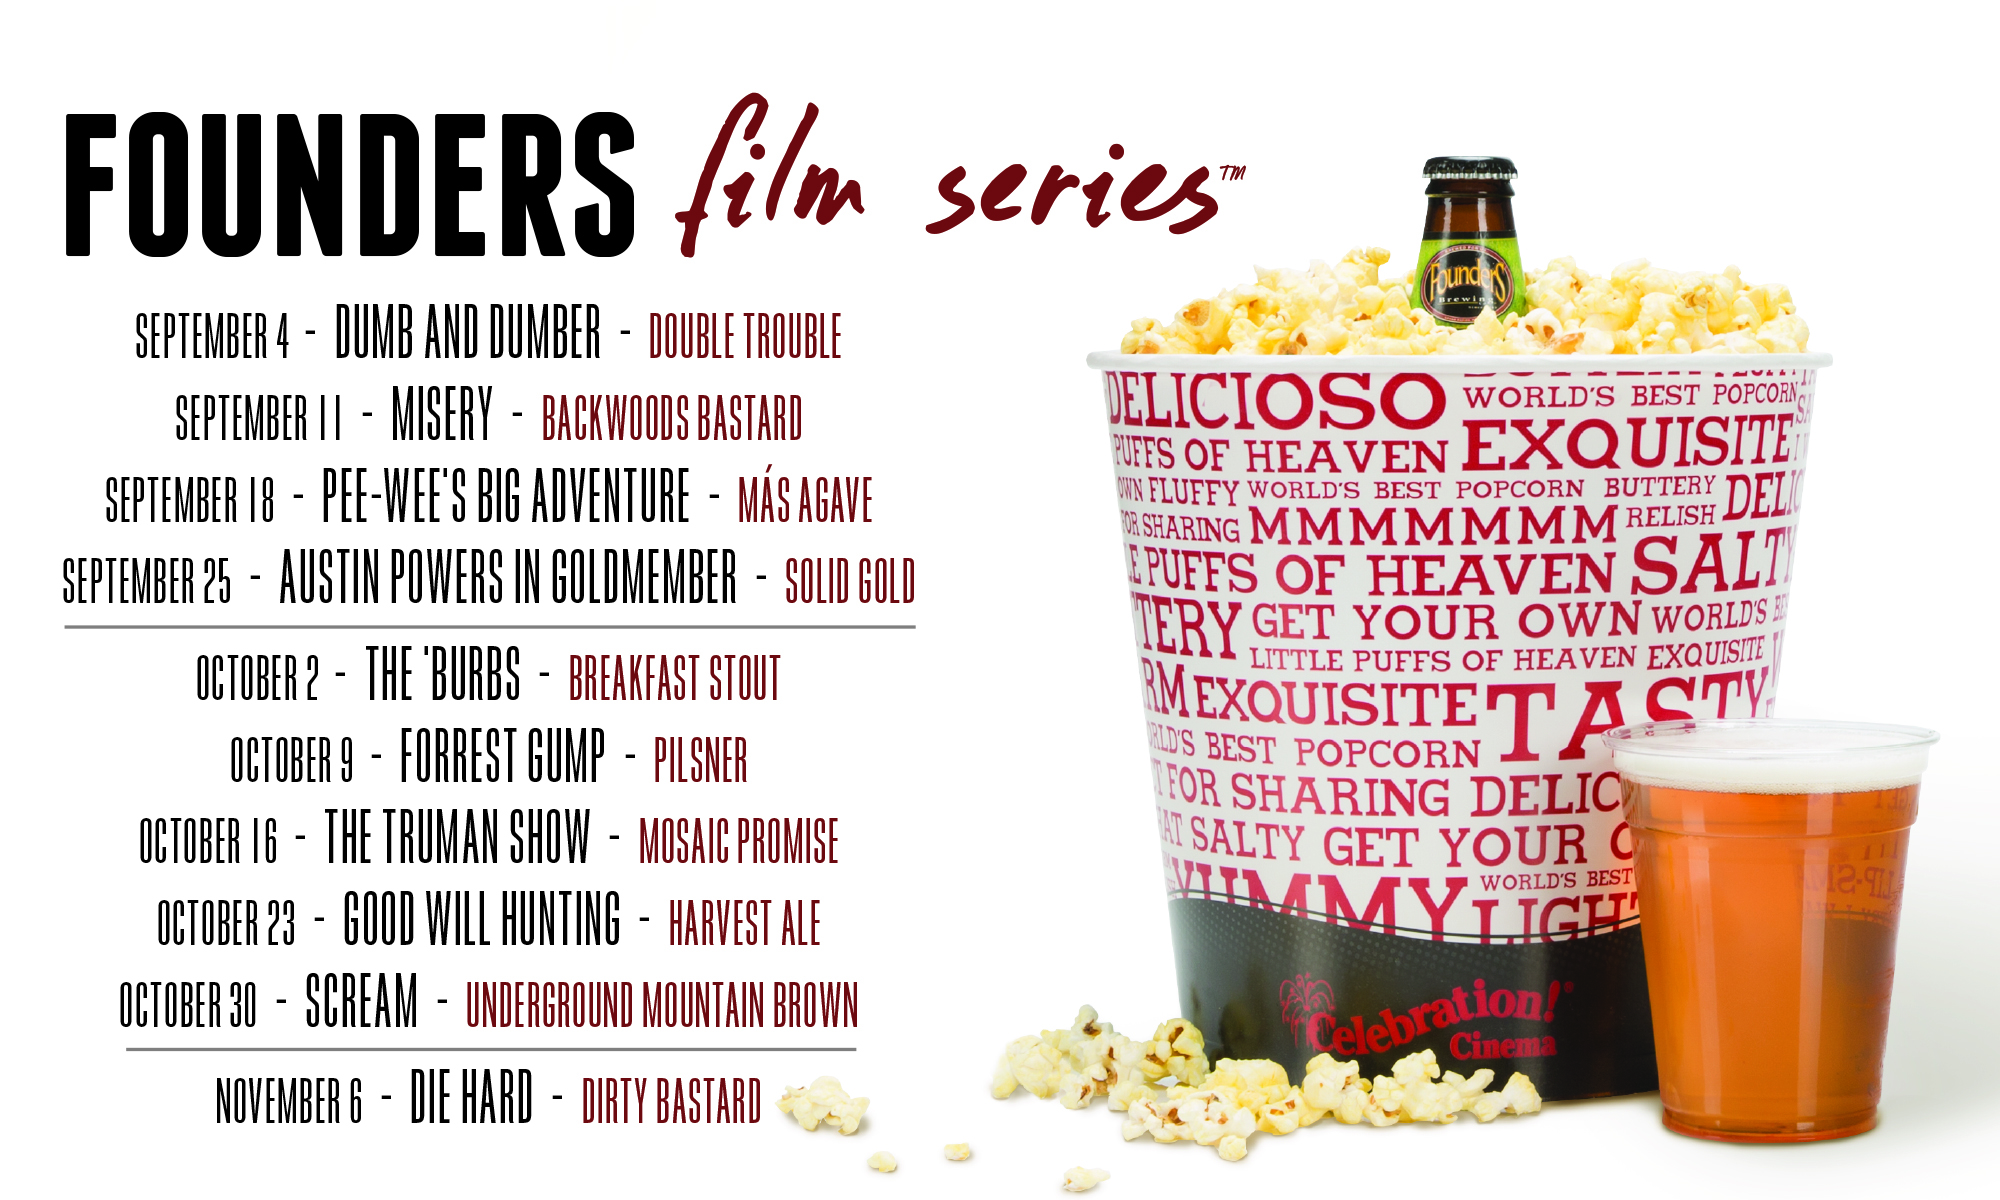 Founders Film Series event poster